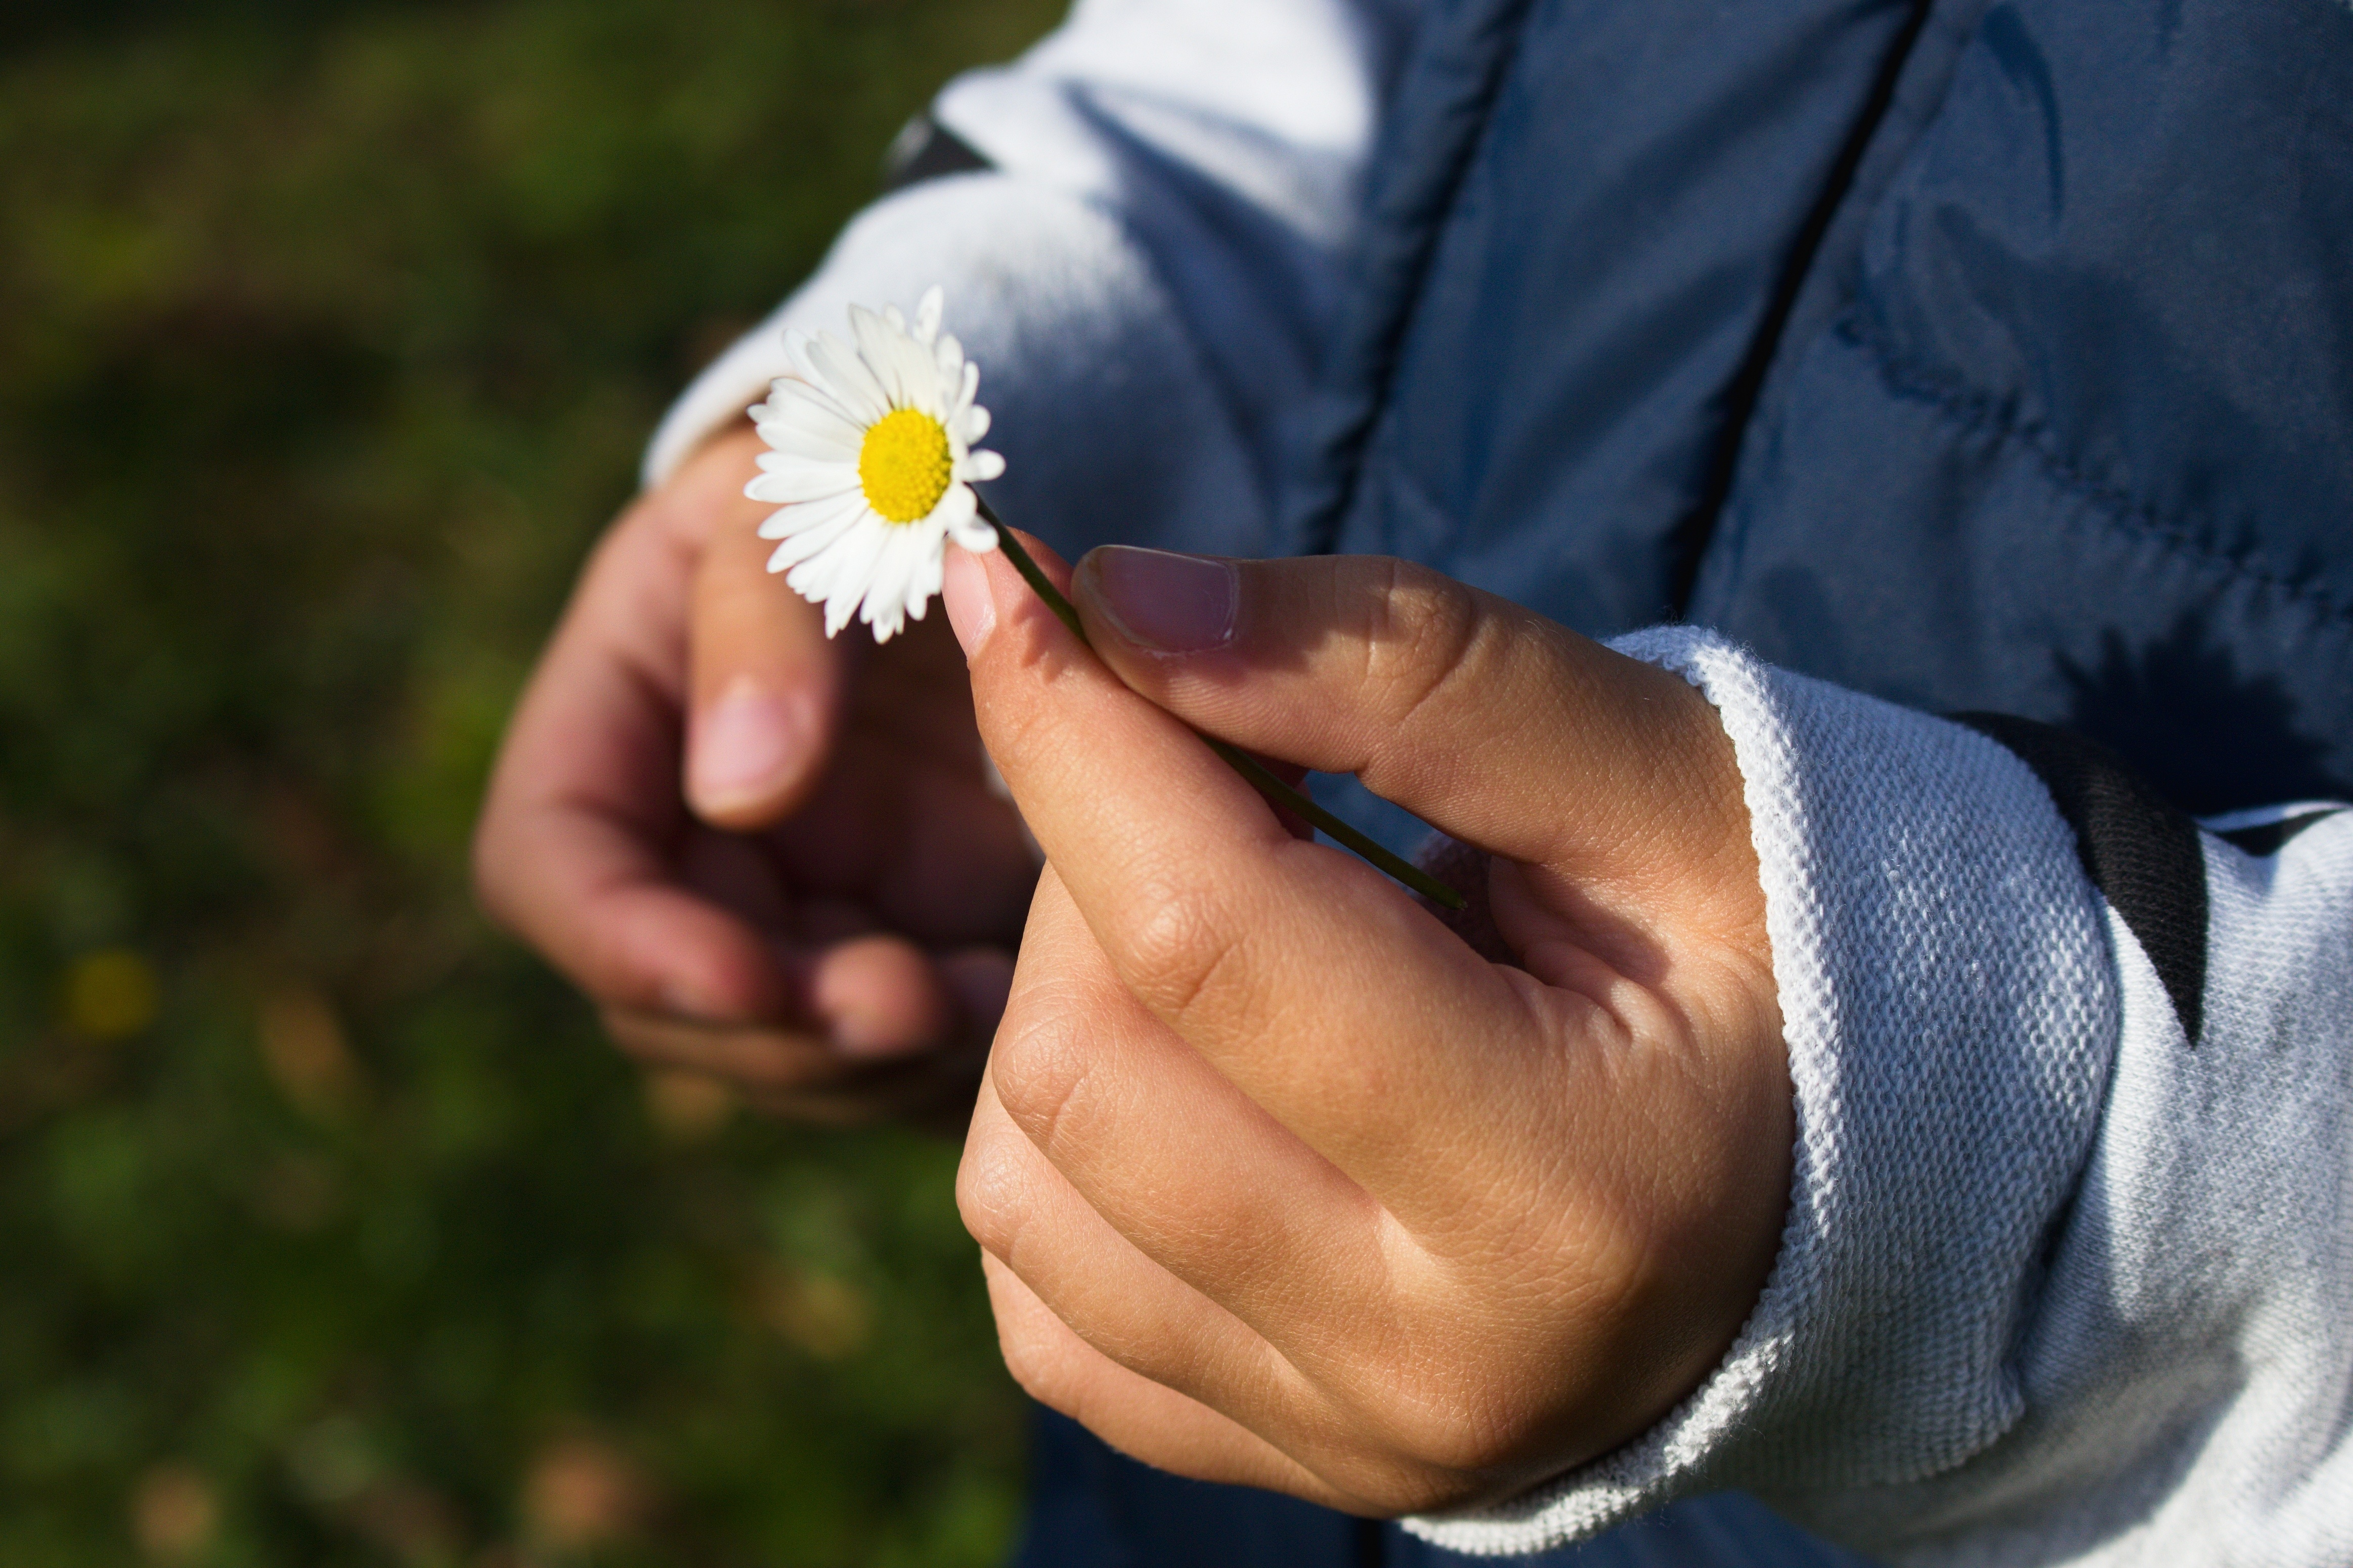 Closeup of a pair of hands, one holds a daisy by the stem.